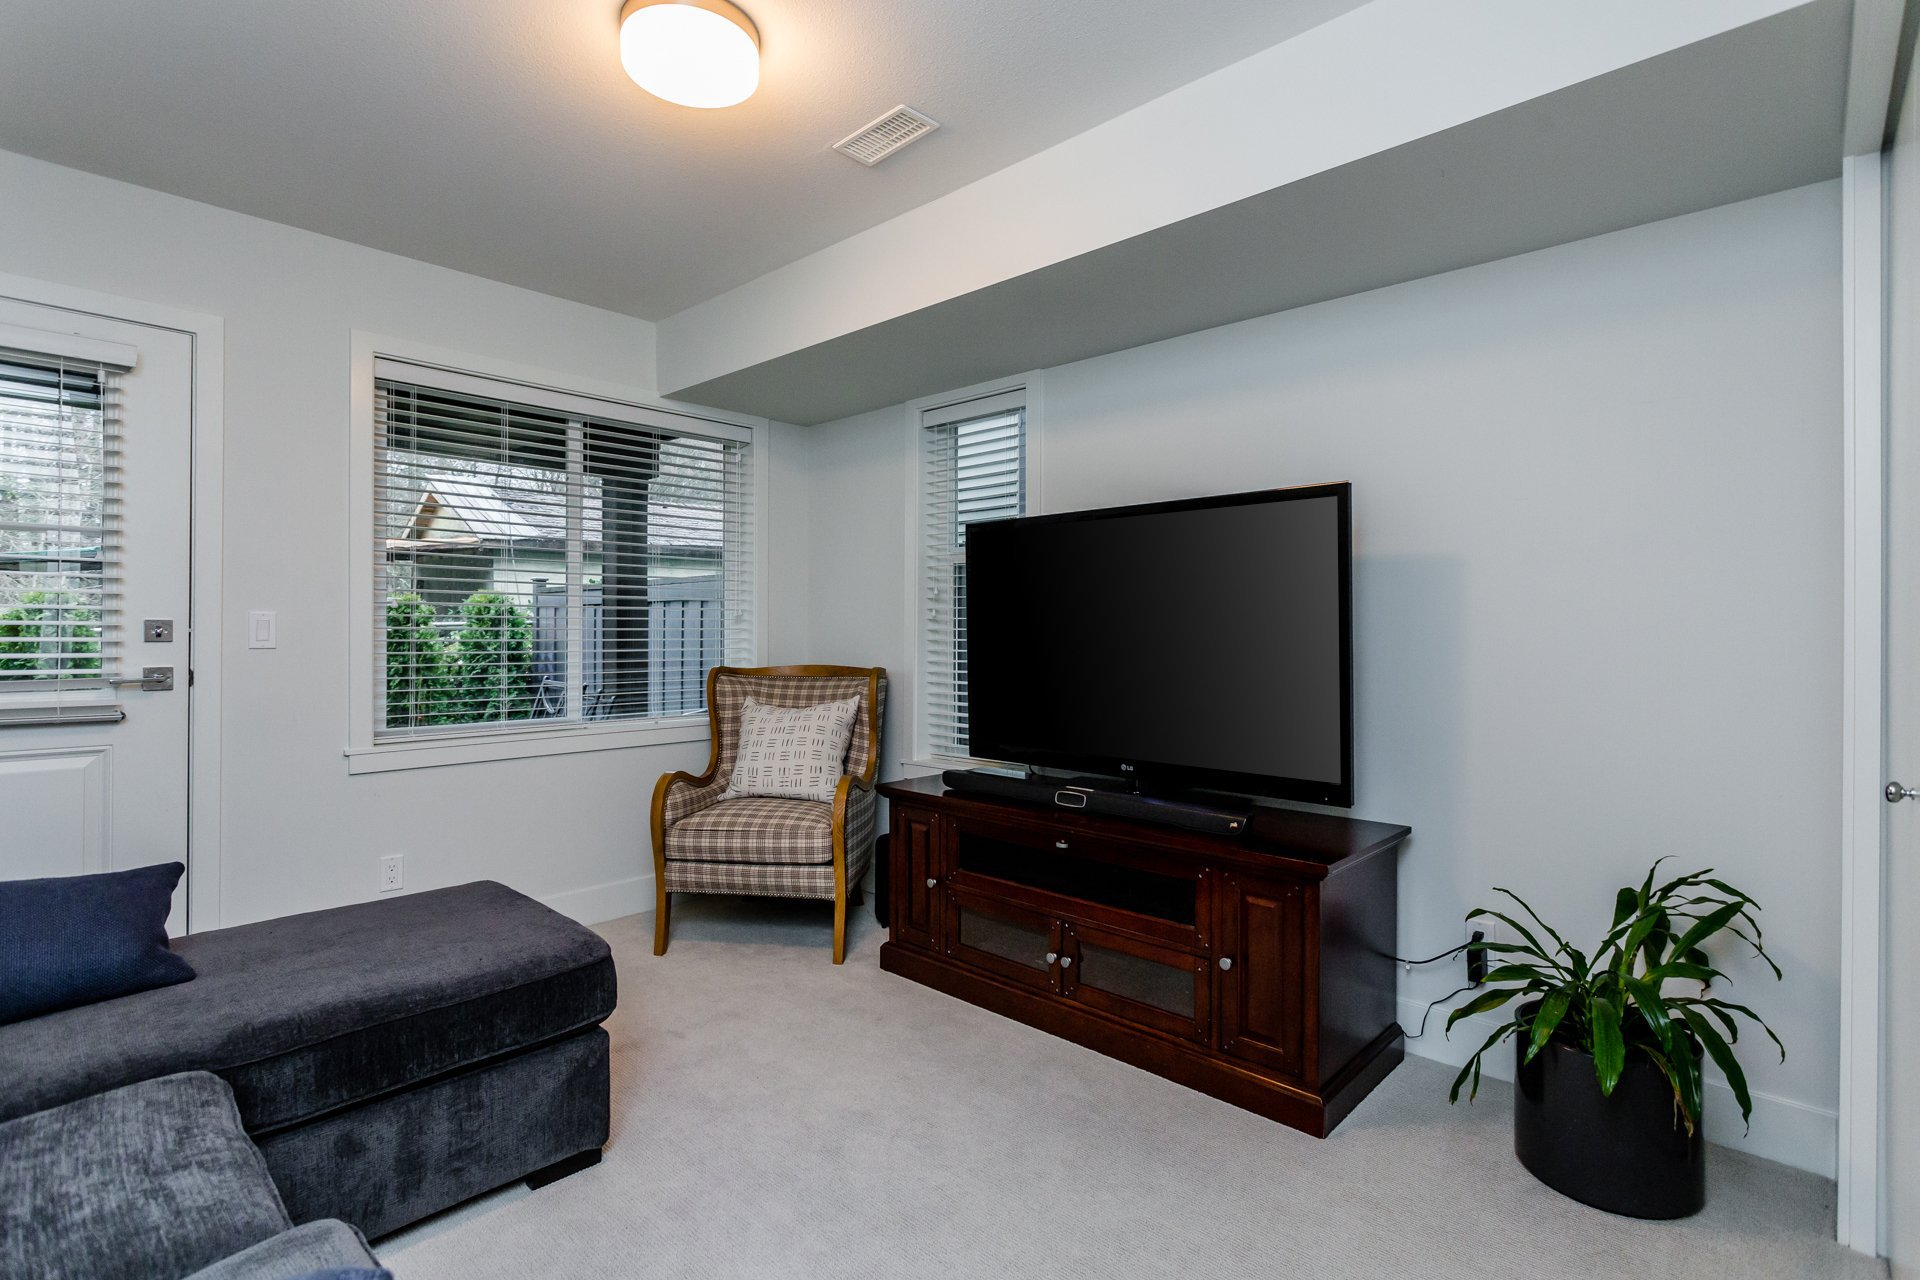 """Photo 35: Photos: 8 8217 204B Street in Langley: Willoughby Heights Townhouse for sale in """"EVERLY GREEN"""" : MLS®# R2236678"""